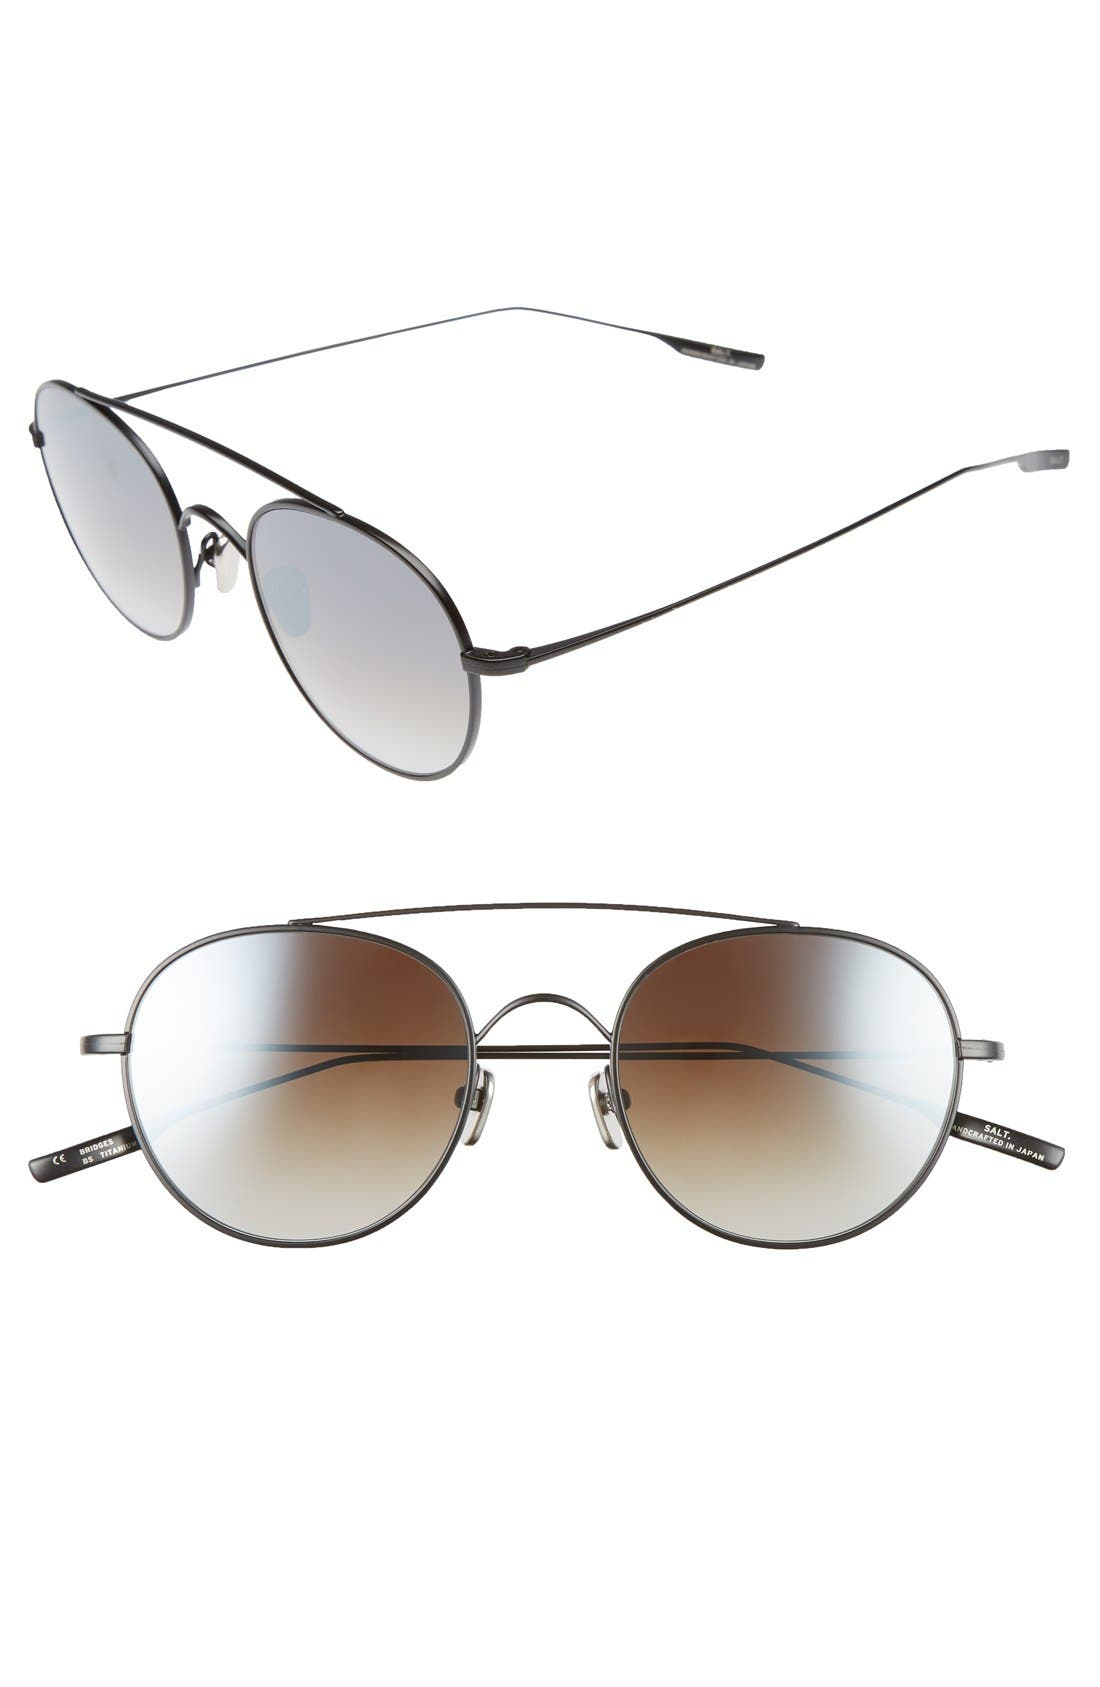 d44ea5caa363 salt sunglasses for men